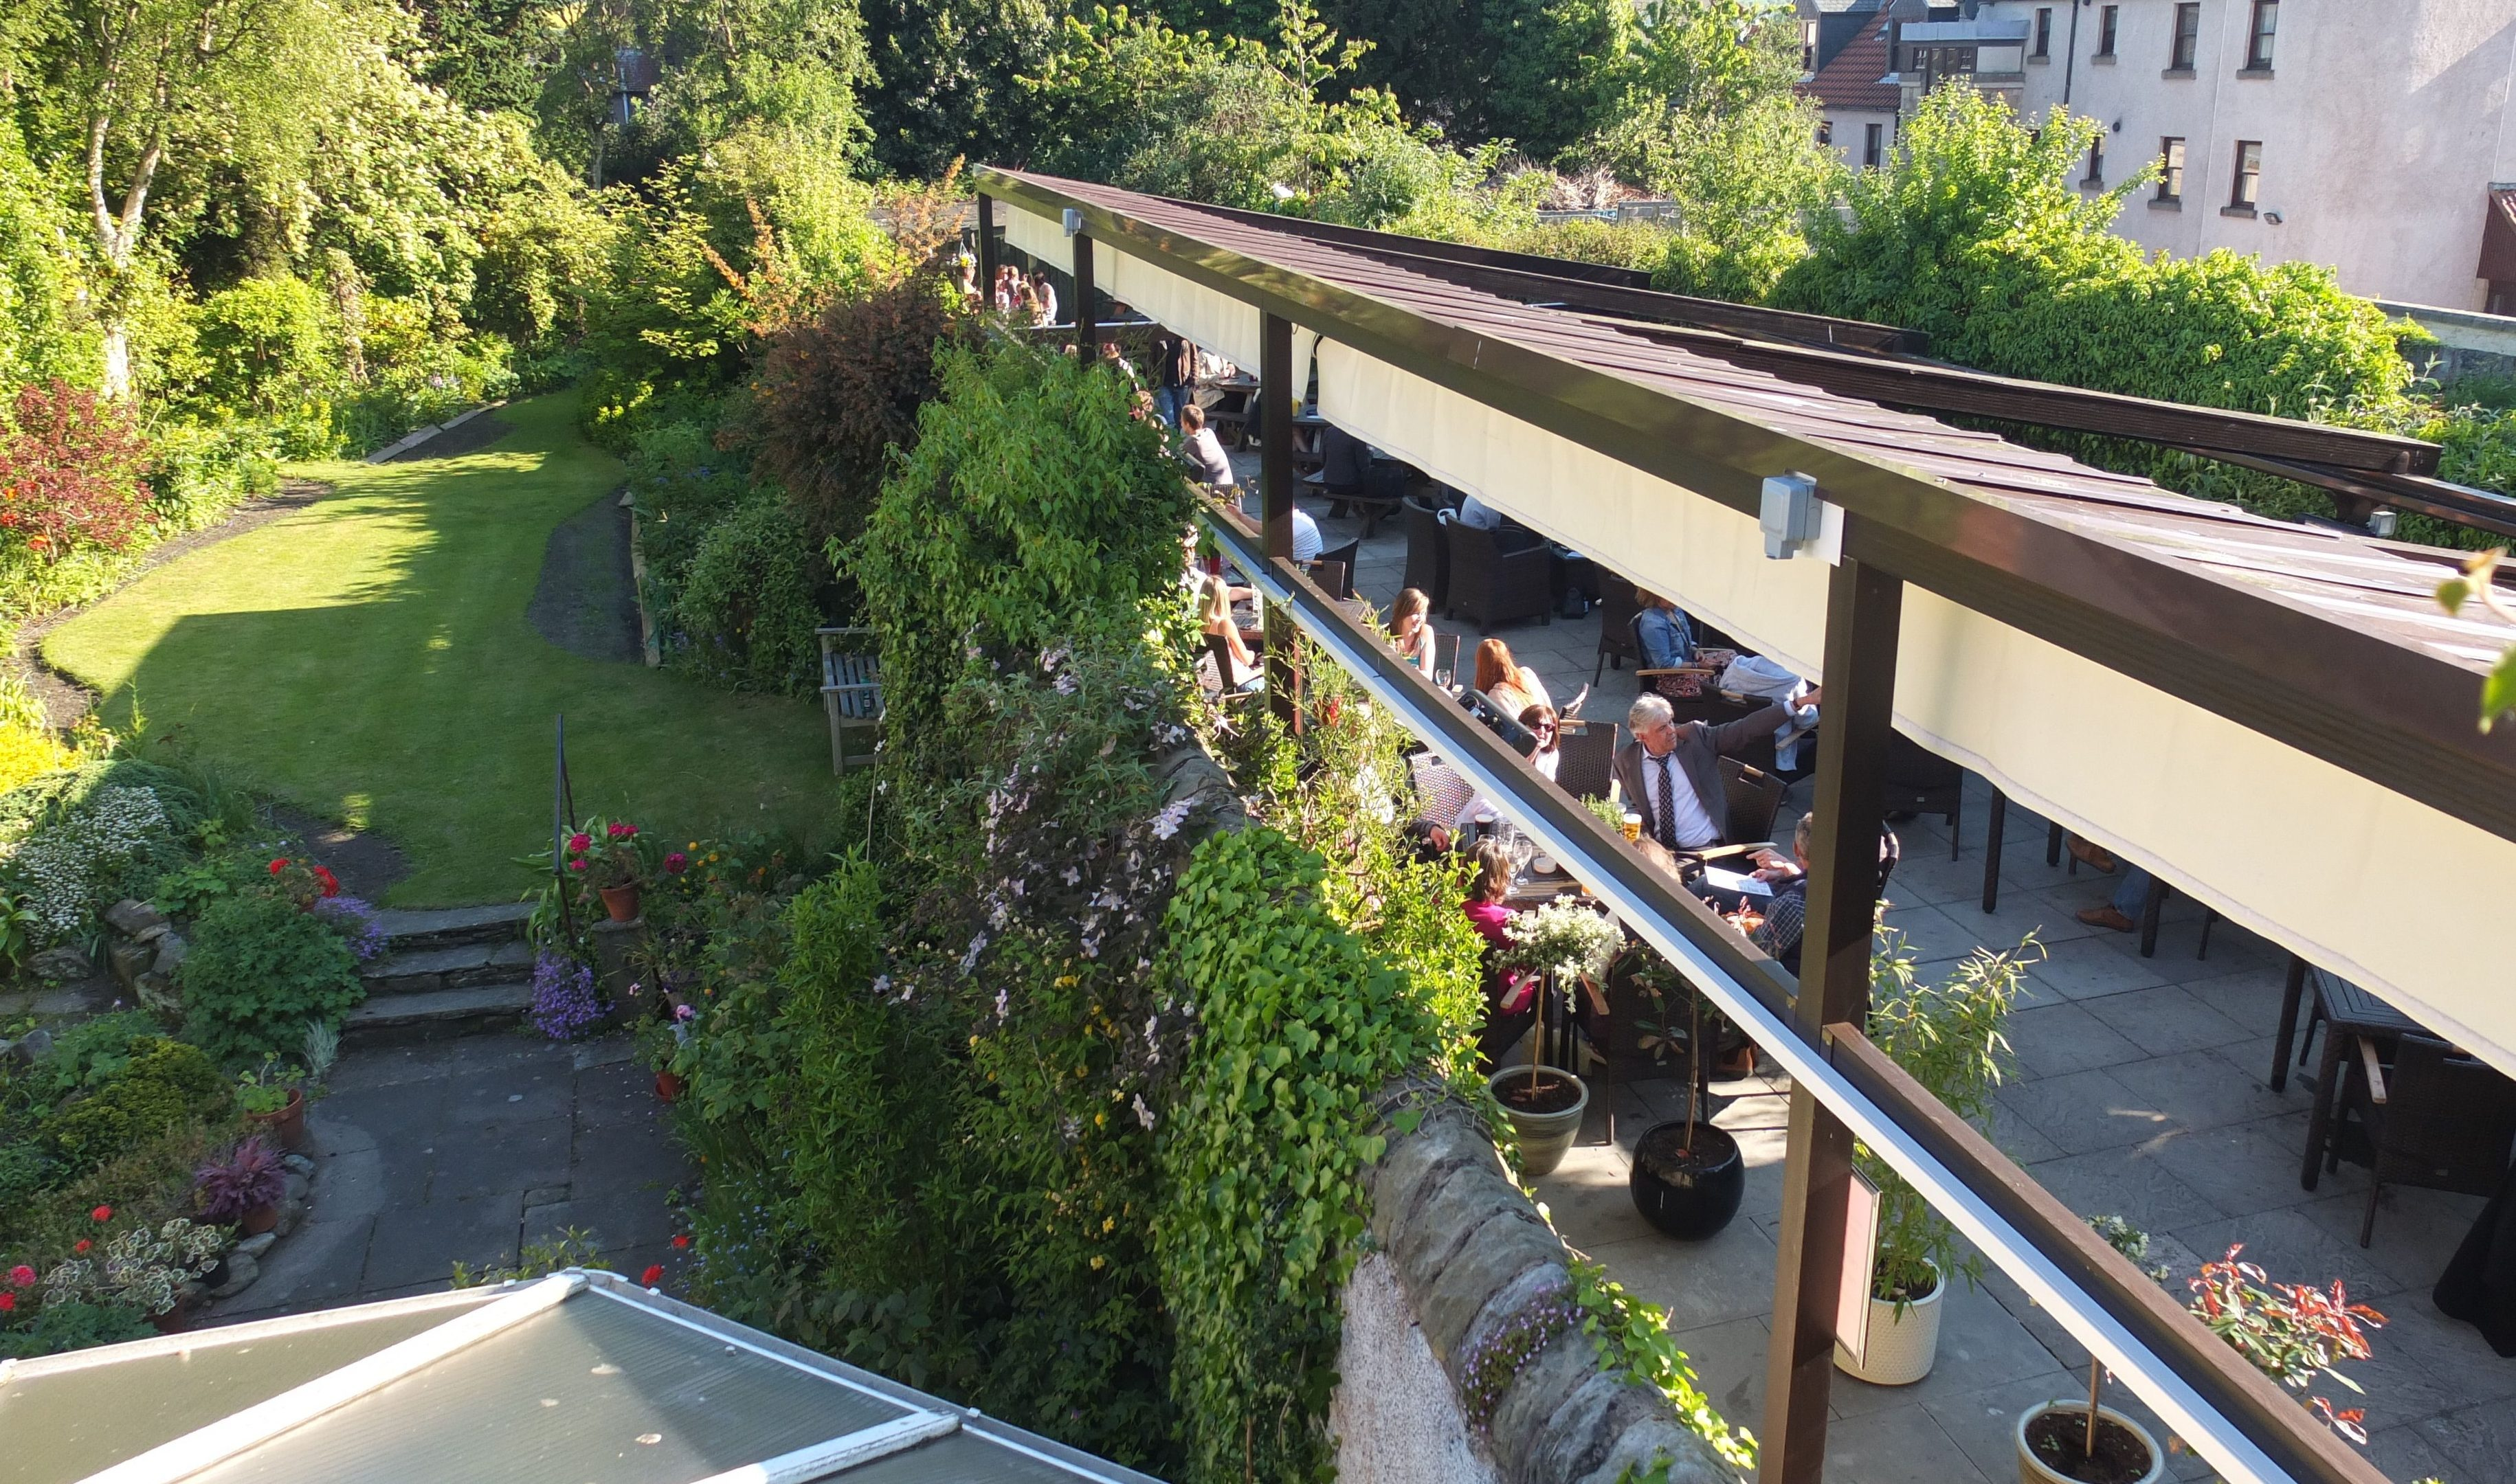 the West Port Bar, St Andrews, where planning permission was withdrawn for a beer garden roof structure incorrectly described as a pergola.